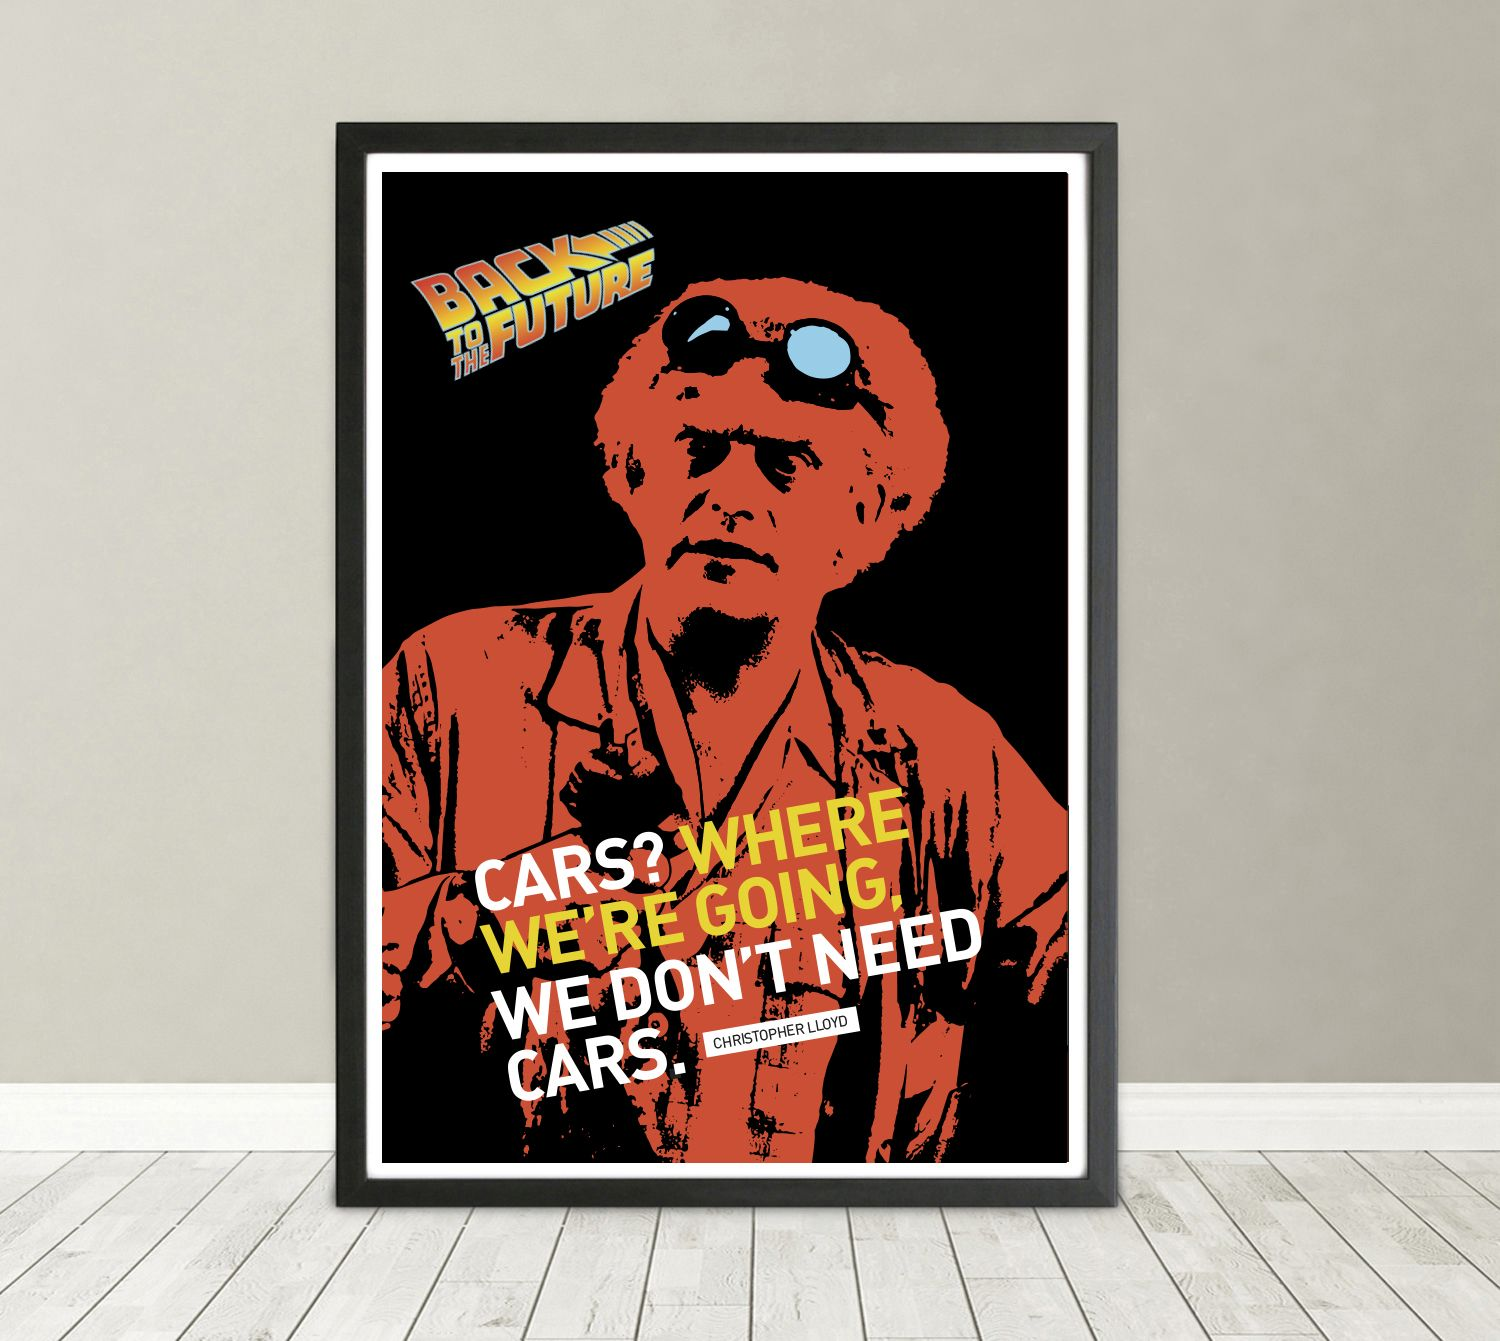 Back To The Future Marty McFly Movie Poster Print T450 A4 A3 A2 A1 A0 